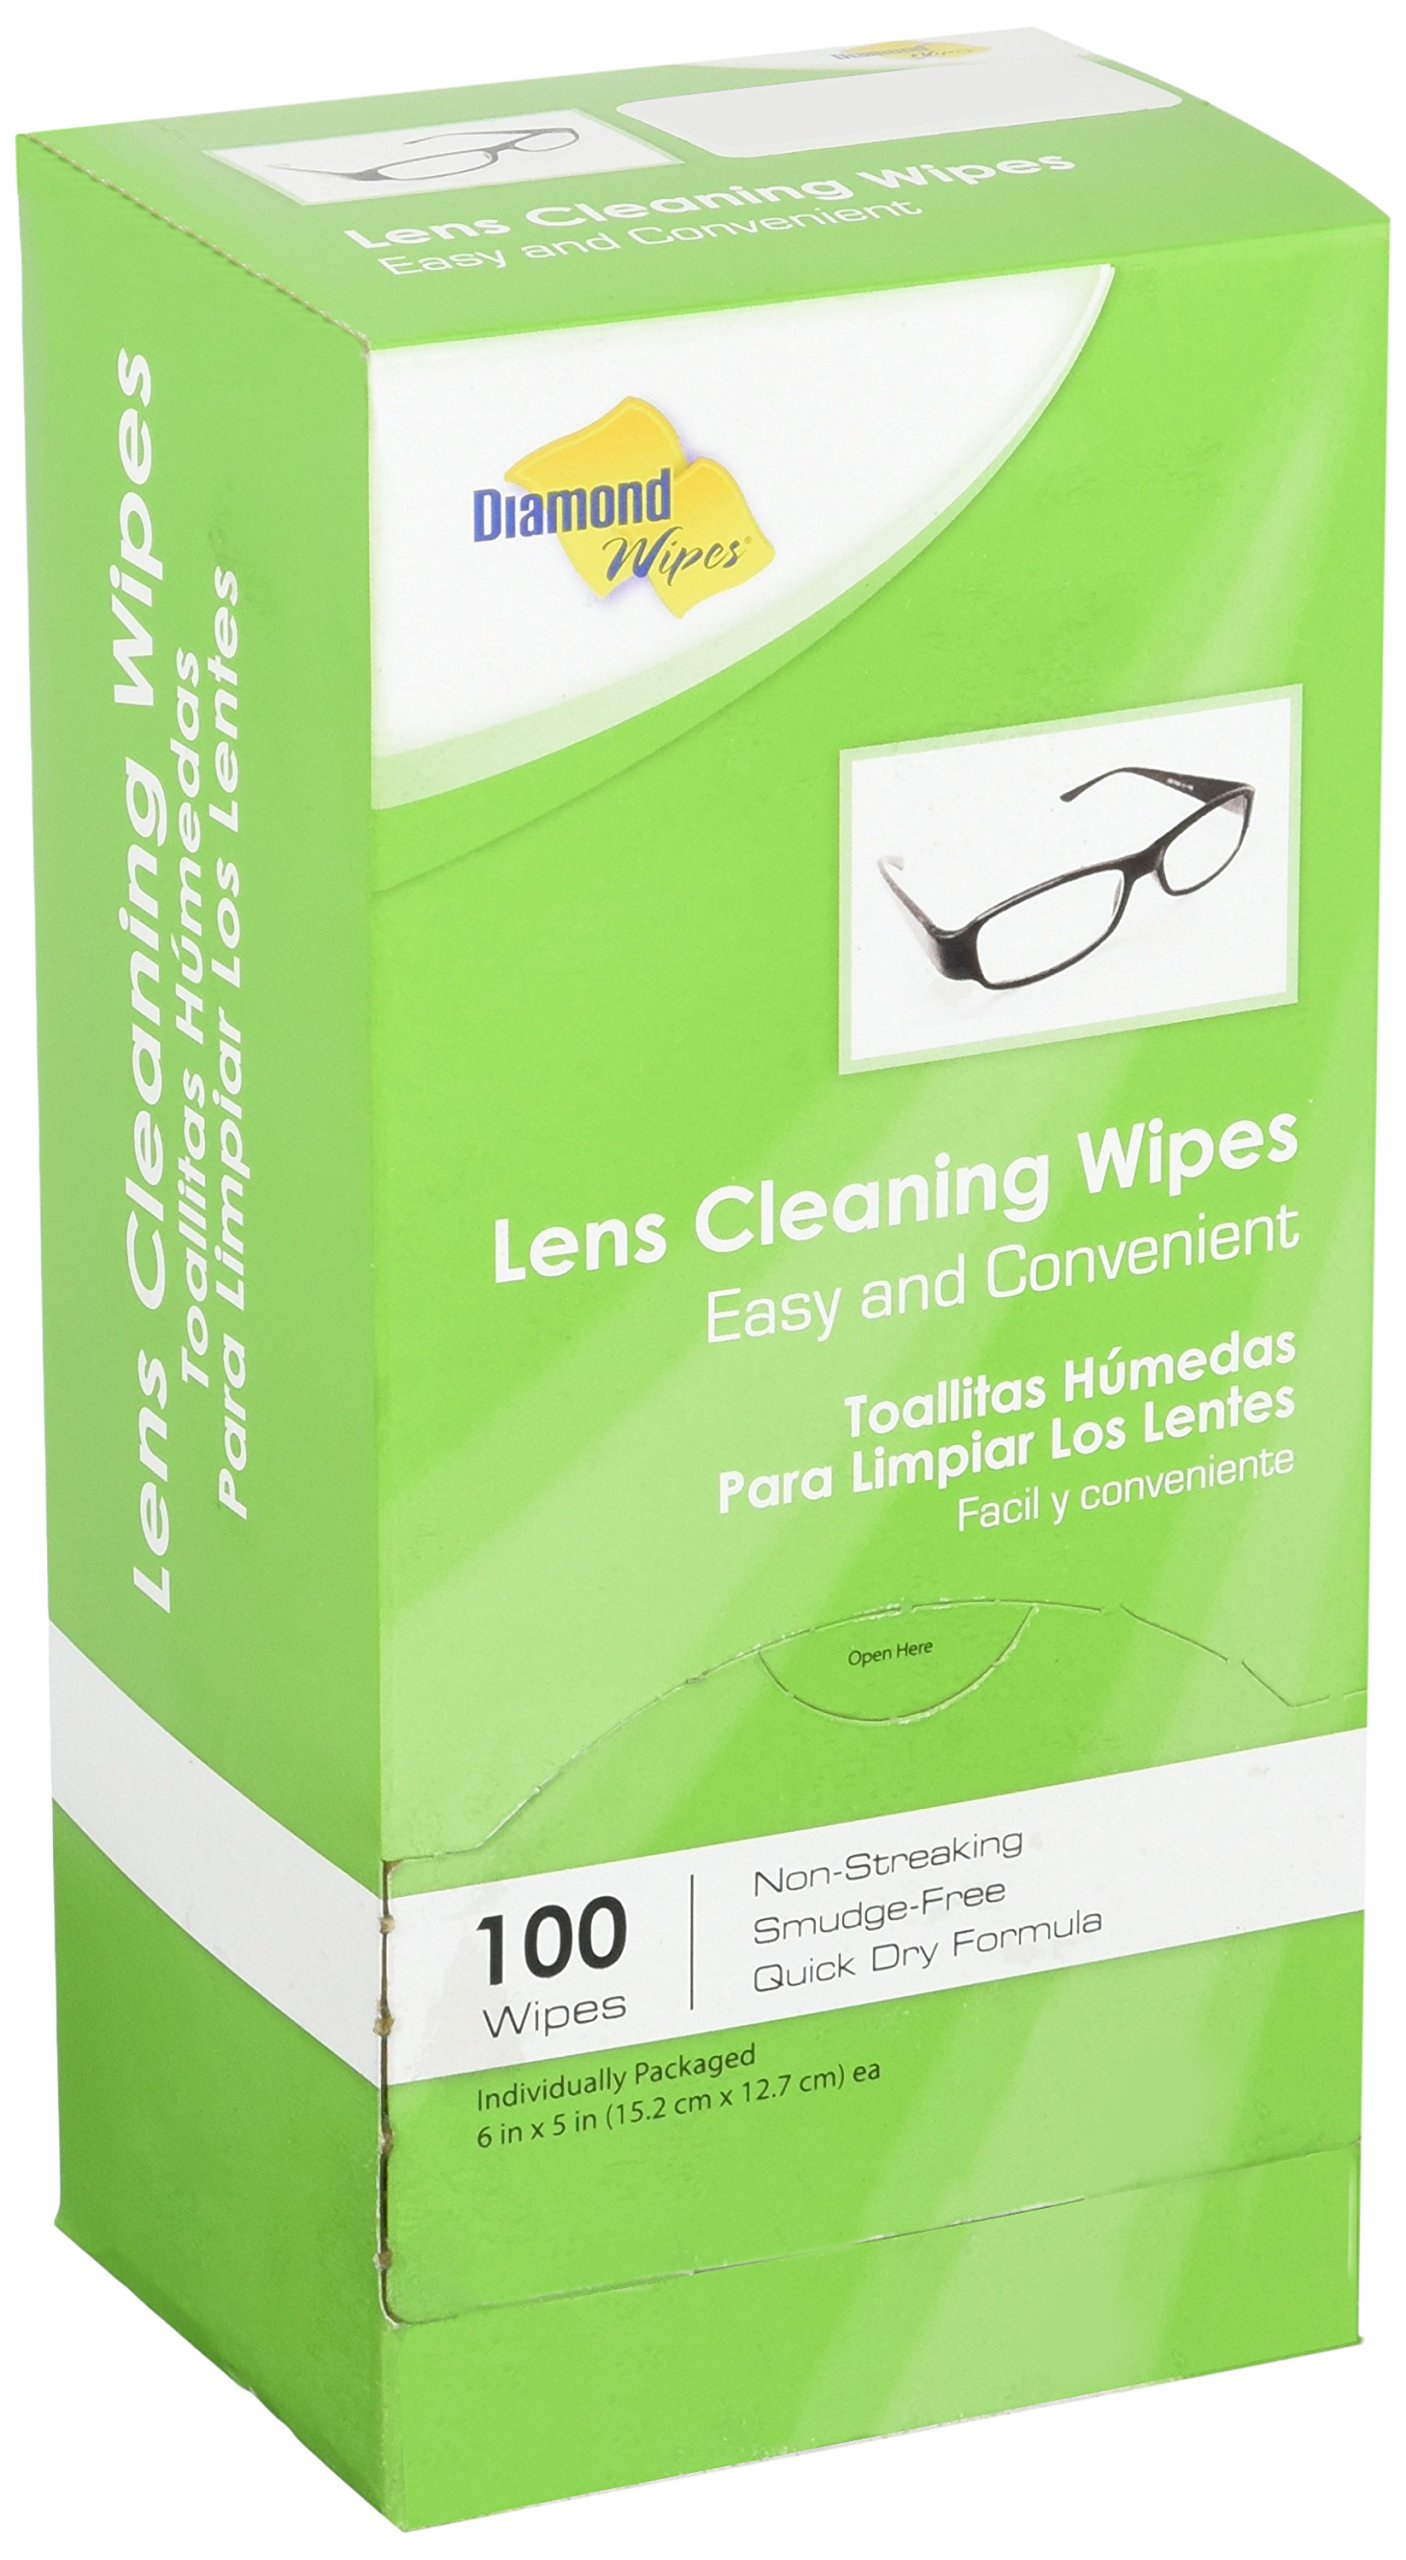 Premoistened Lens and Glass Cleaning Wipes: Portable Travel Cleaner for Glasses, Camera, Cell